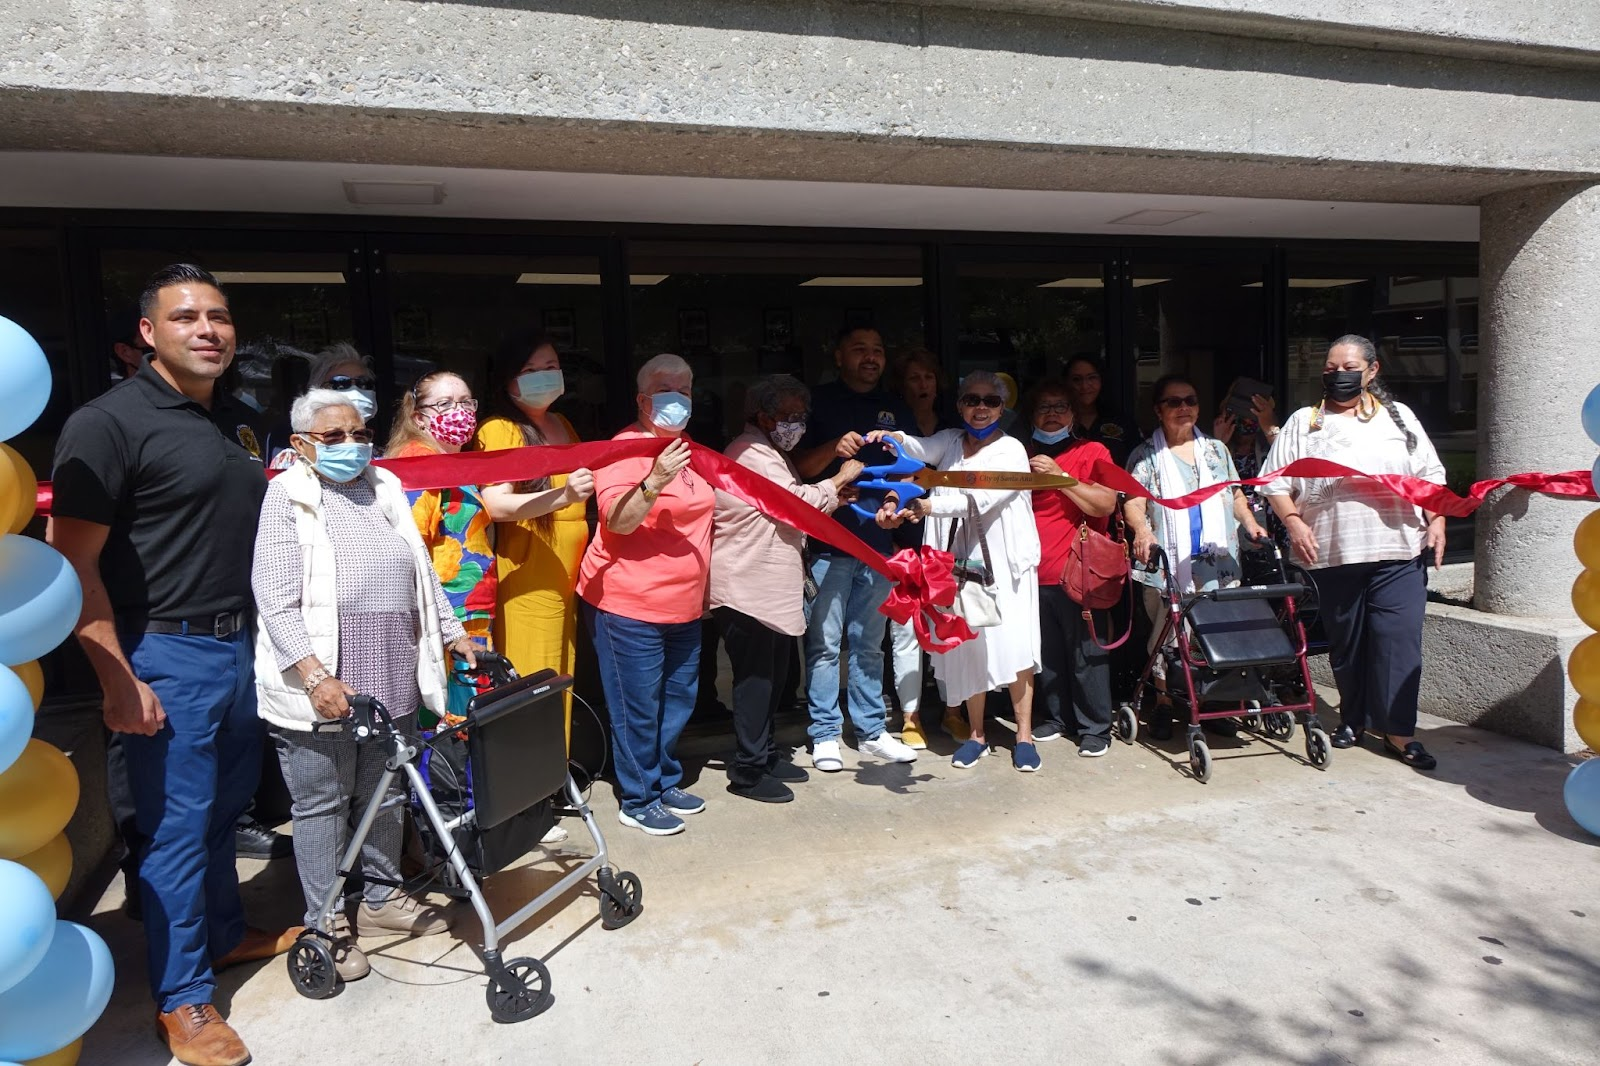 An image from the ribbon cutting at the Santa Ana senior center. There are about a dozen people in the photo, all but two are behind a red ribbon being cut and falling. Most everyone is wearing a mask and looking at the camera.